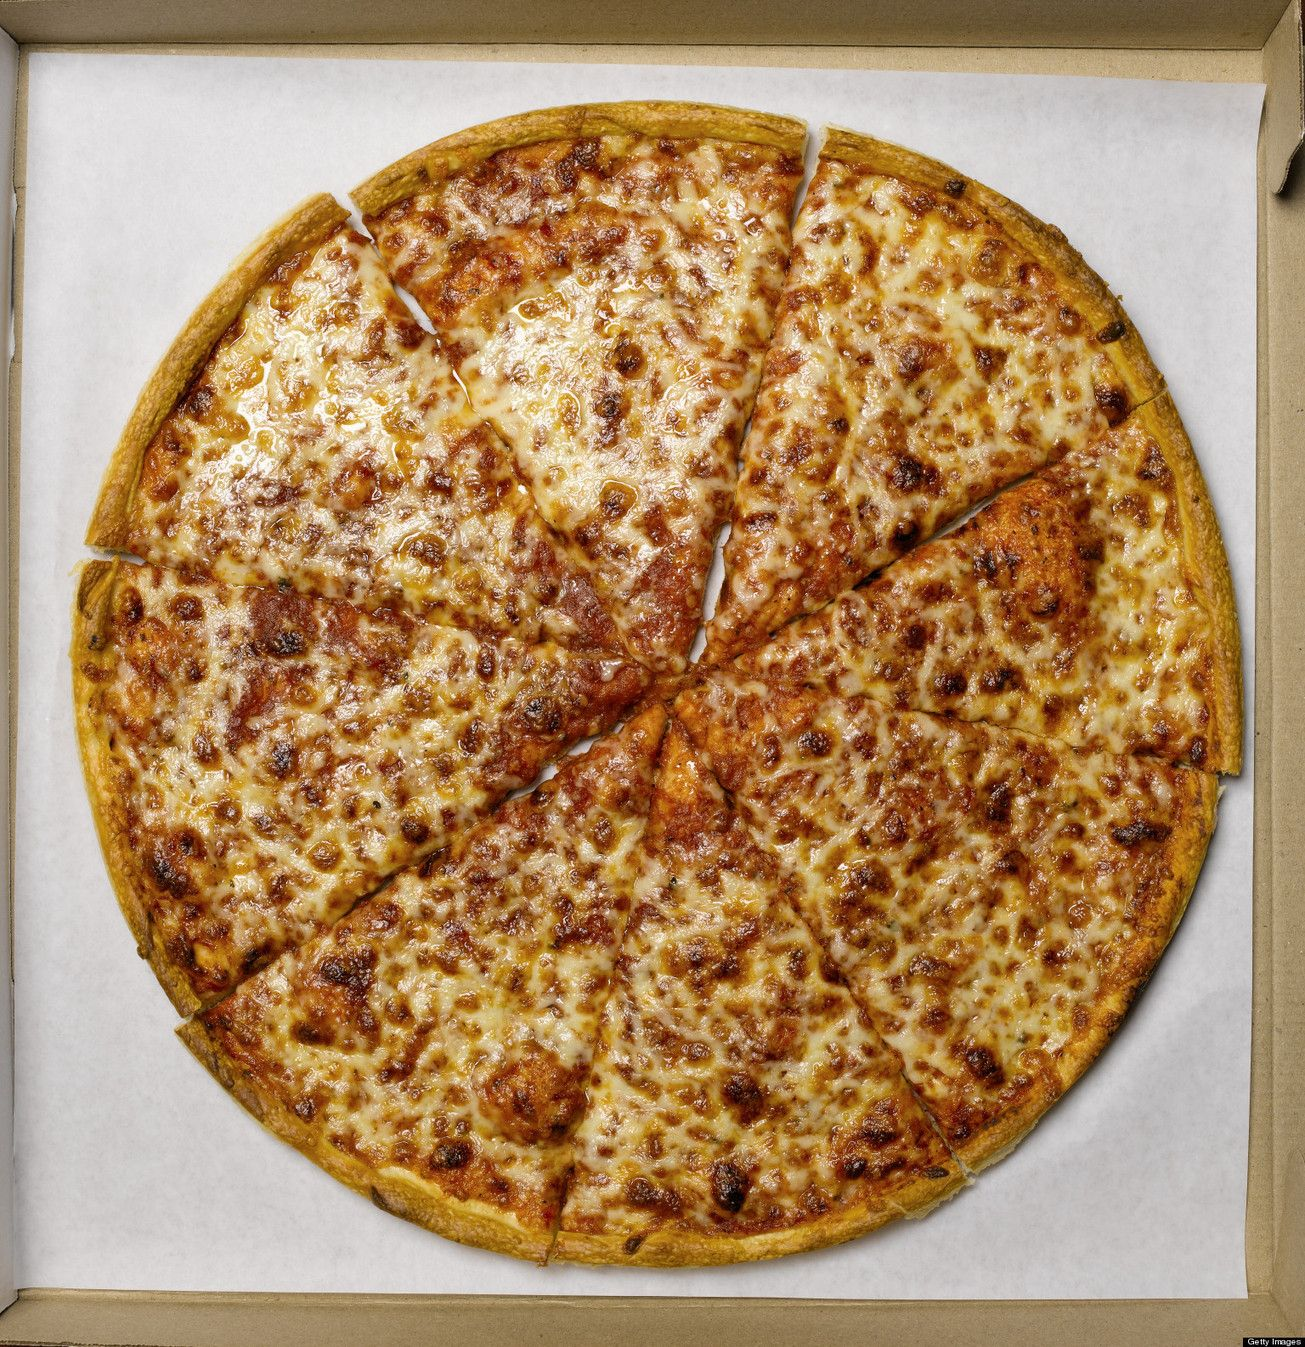 Interesting Pizzas Largest Pizza Delivery Pizzas But I Like Pinterest Large Pizza Worlds Biggest Pizza Fontana World S Biggest Pizza Youtube